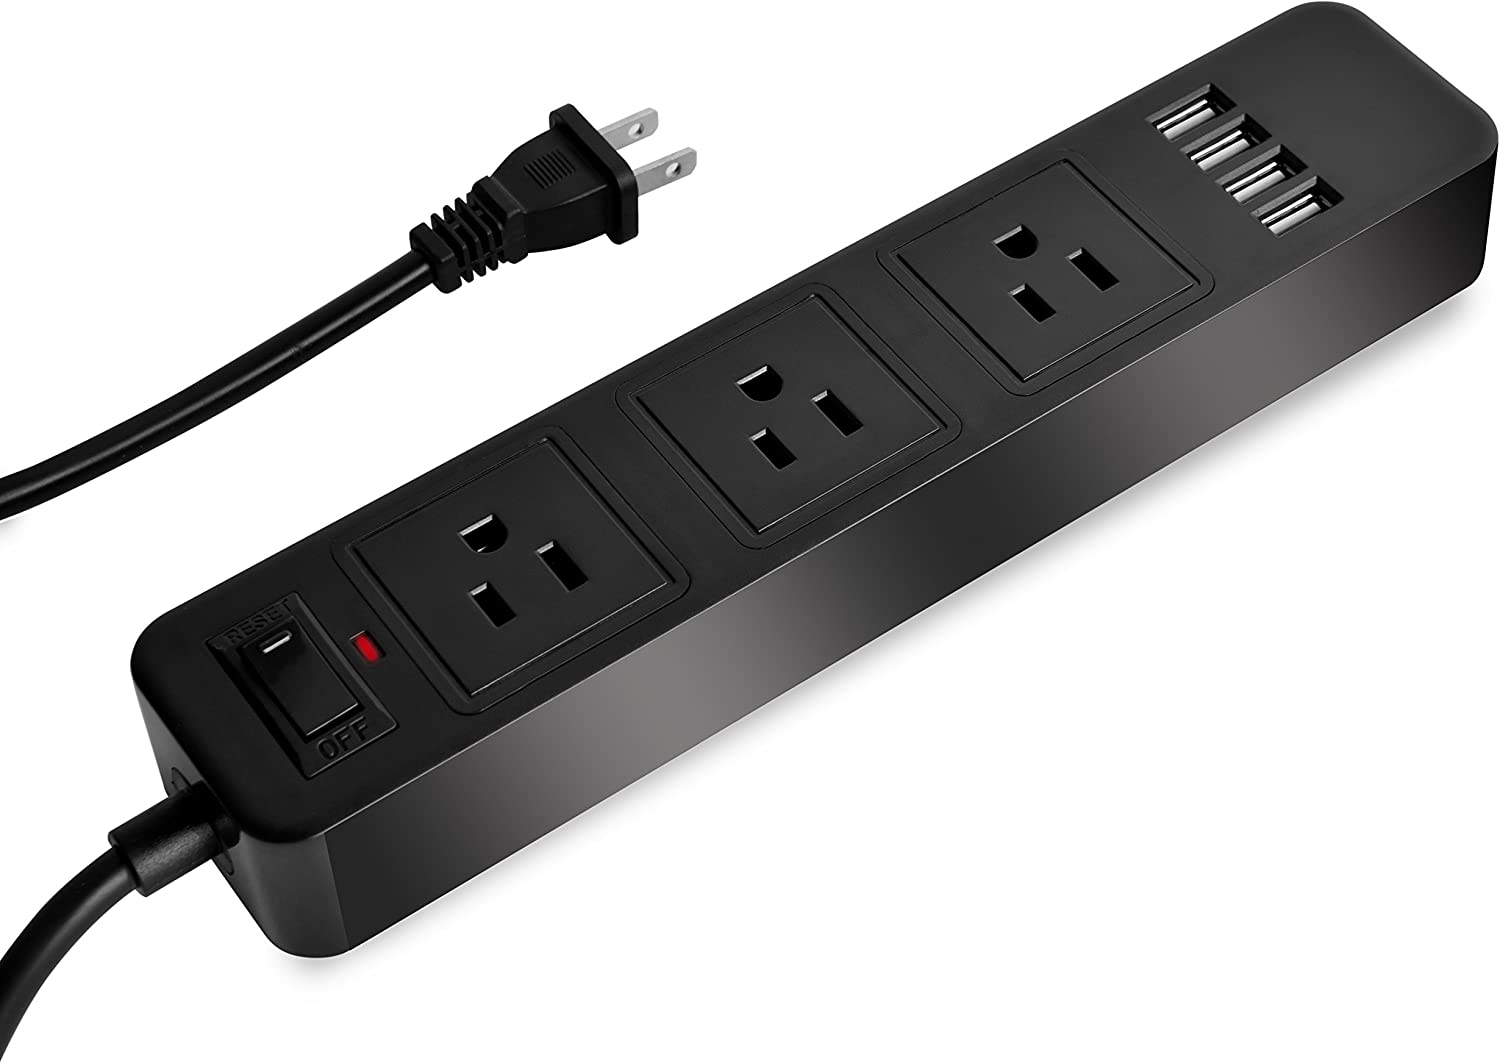 Power Strip Surge Protector 2 Prong Max 68% OFF with and 4 USB Outlets Large discharge sale Cha 3